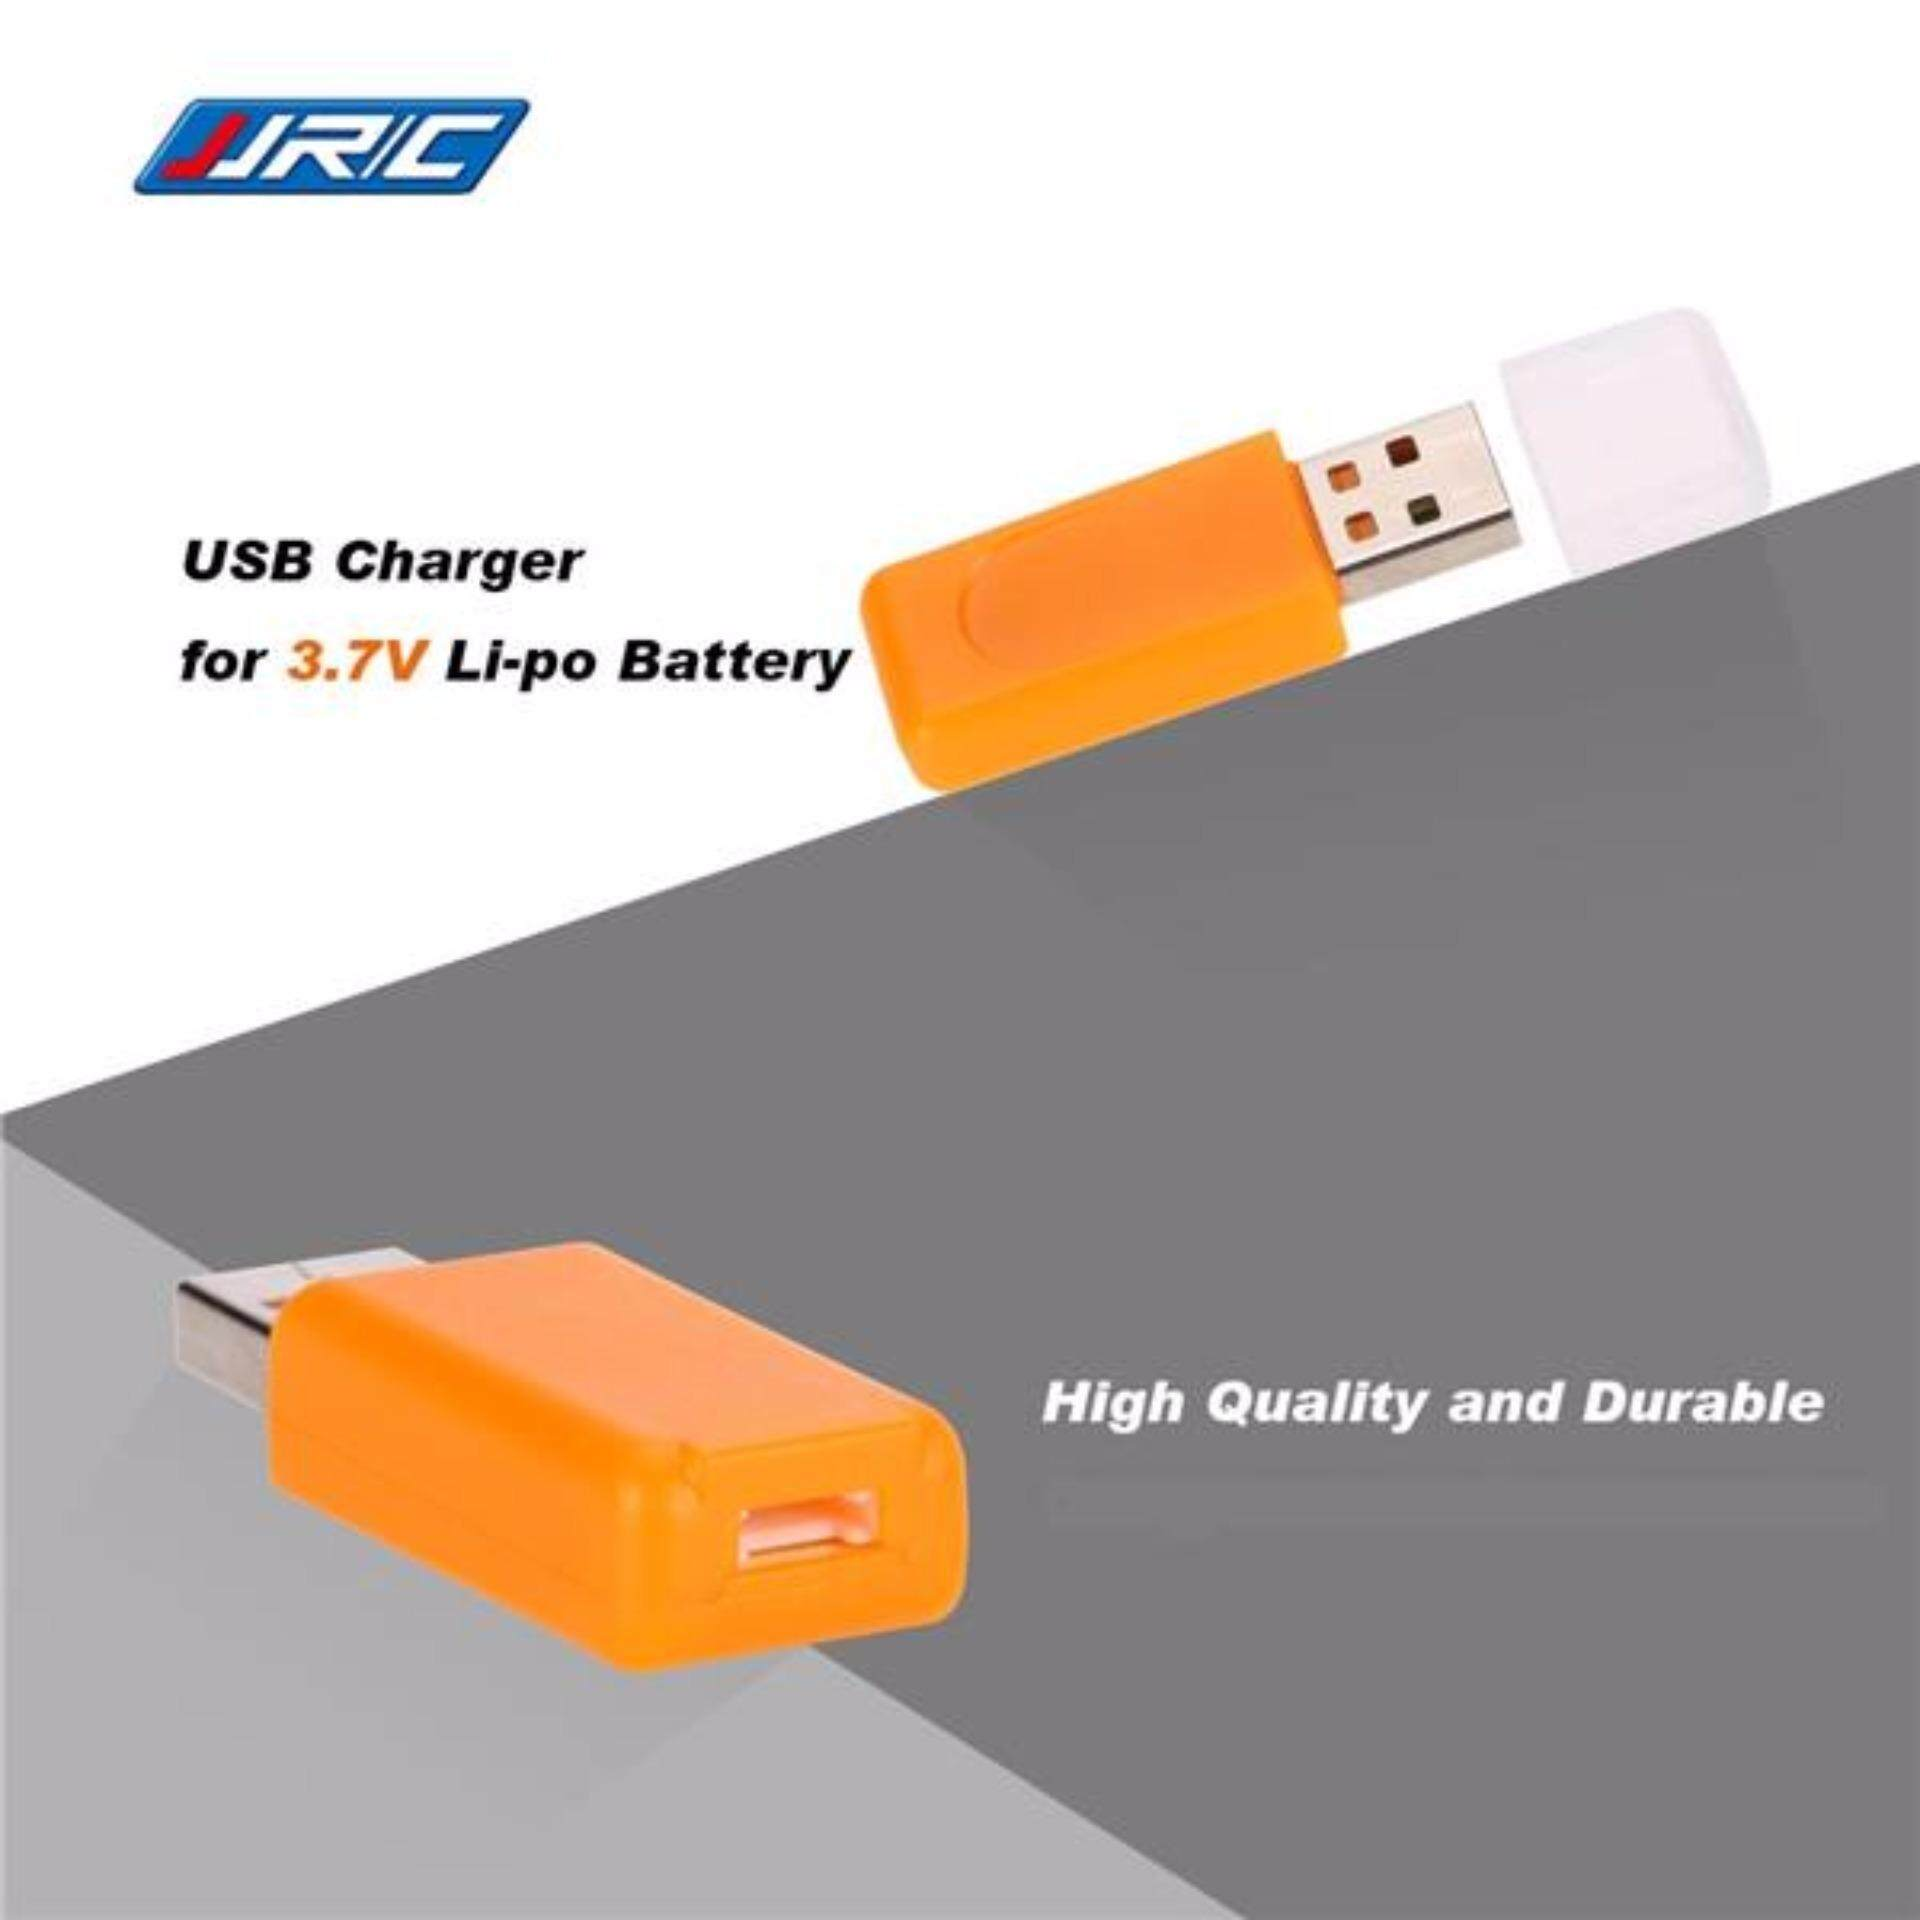 USB Charger 2pcs Pack For JJRC H37 RC Selfie Drone Spare Parts Toys for boys